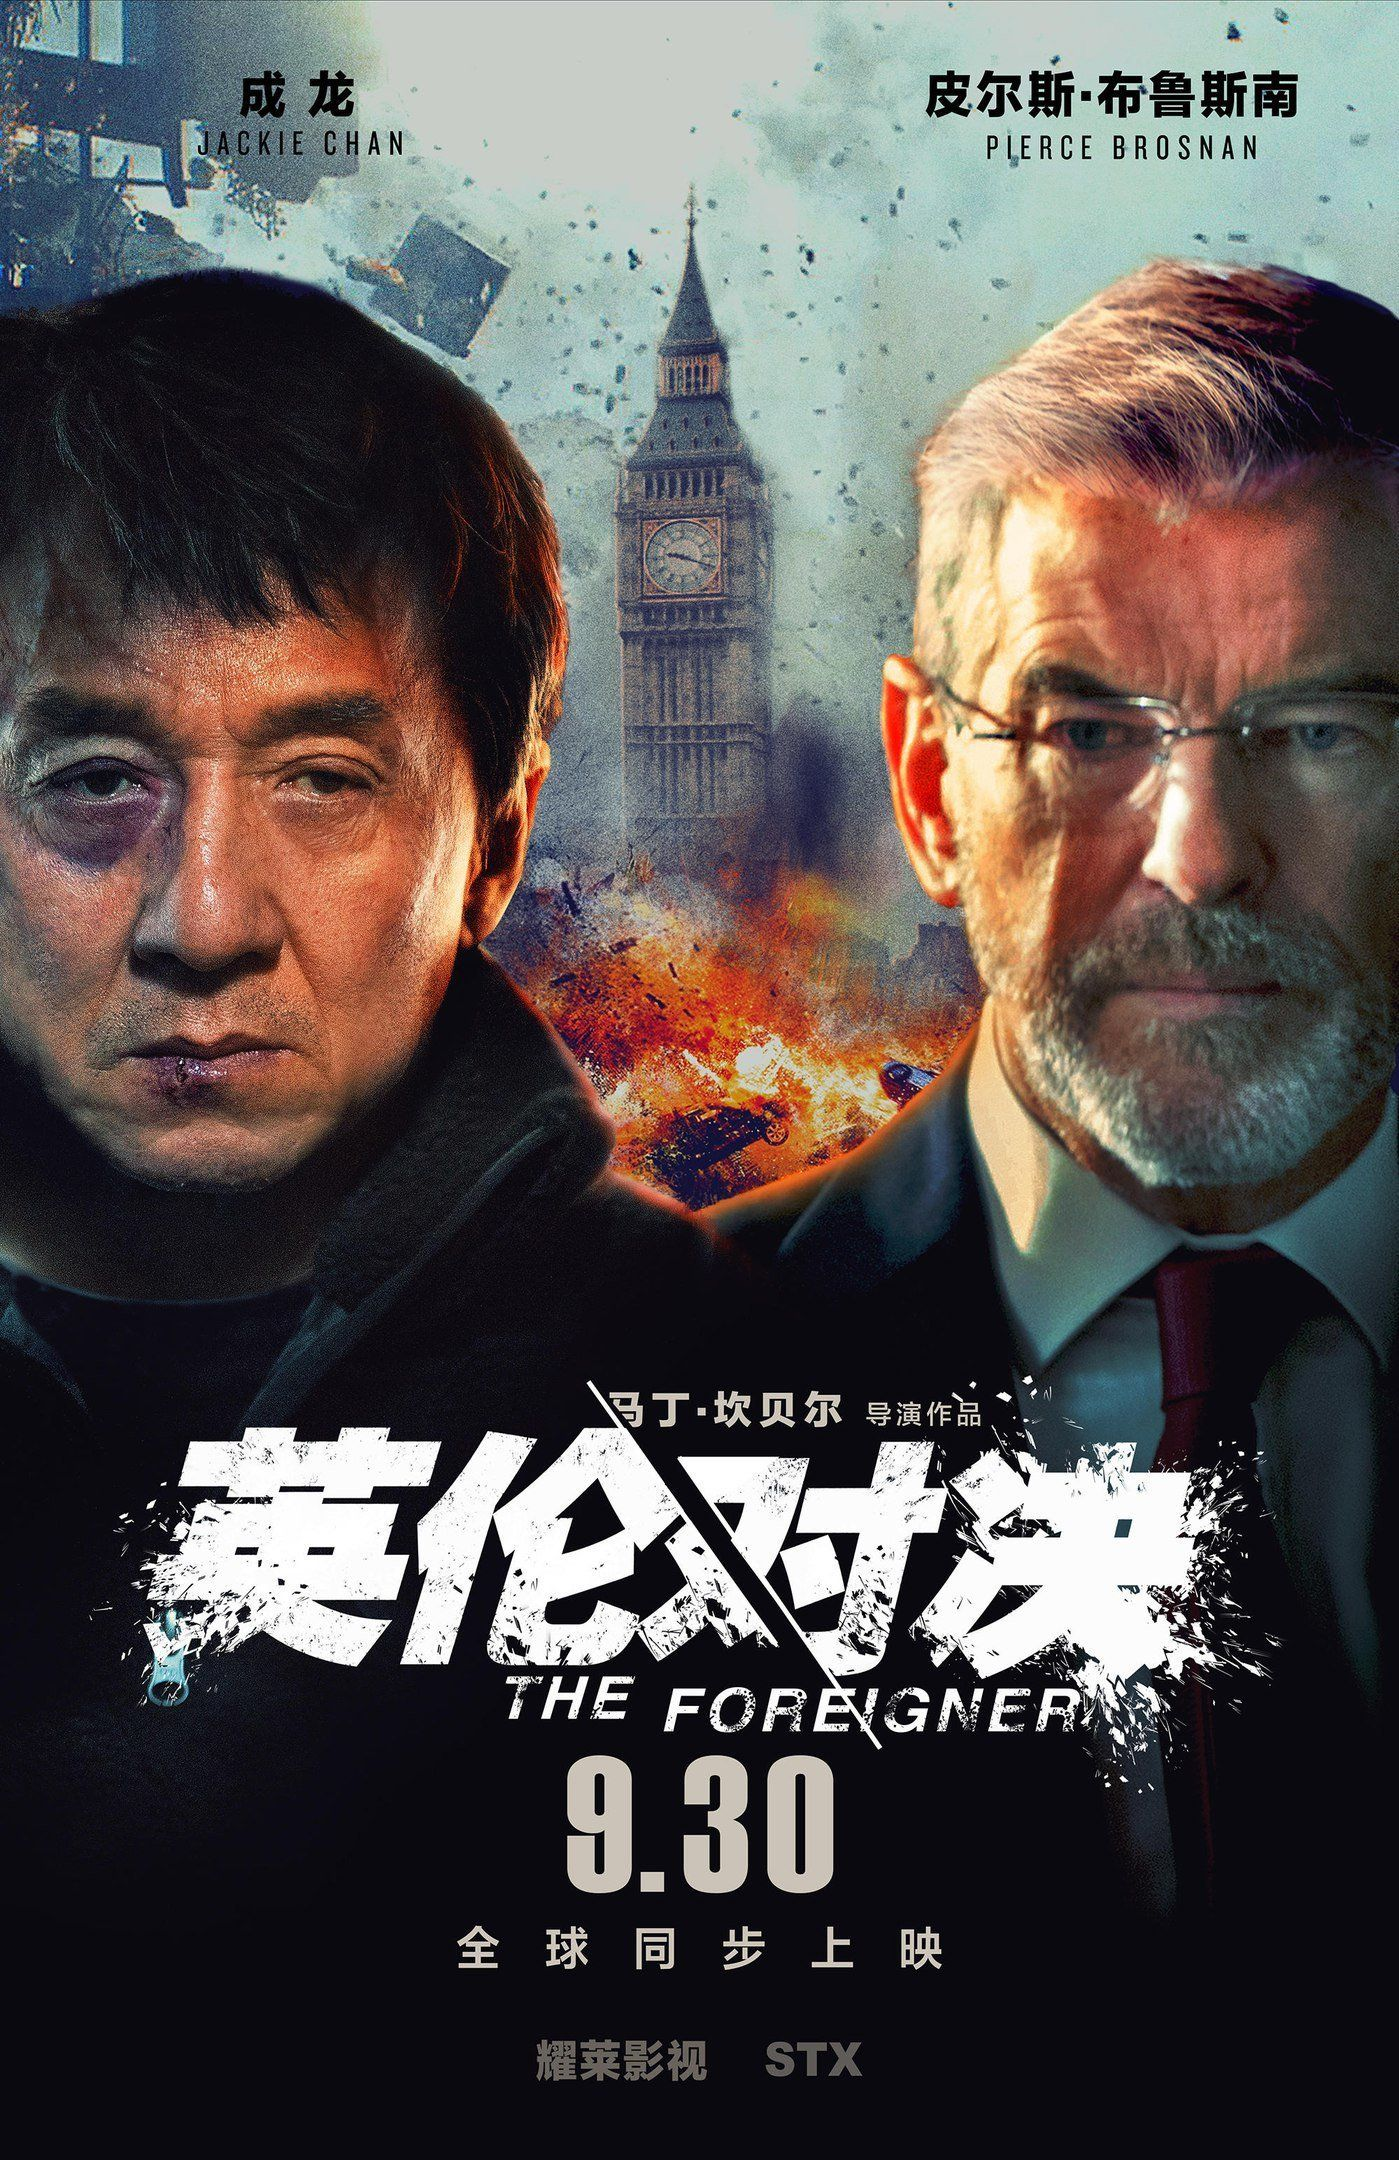 Jackie Chan's The Foreigner movie trailer #movies #cinema ...